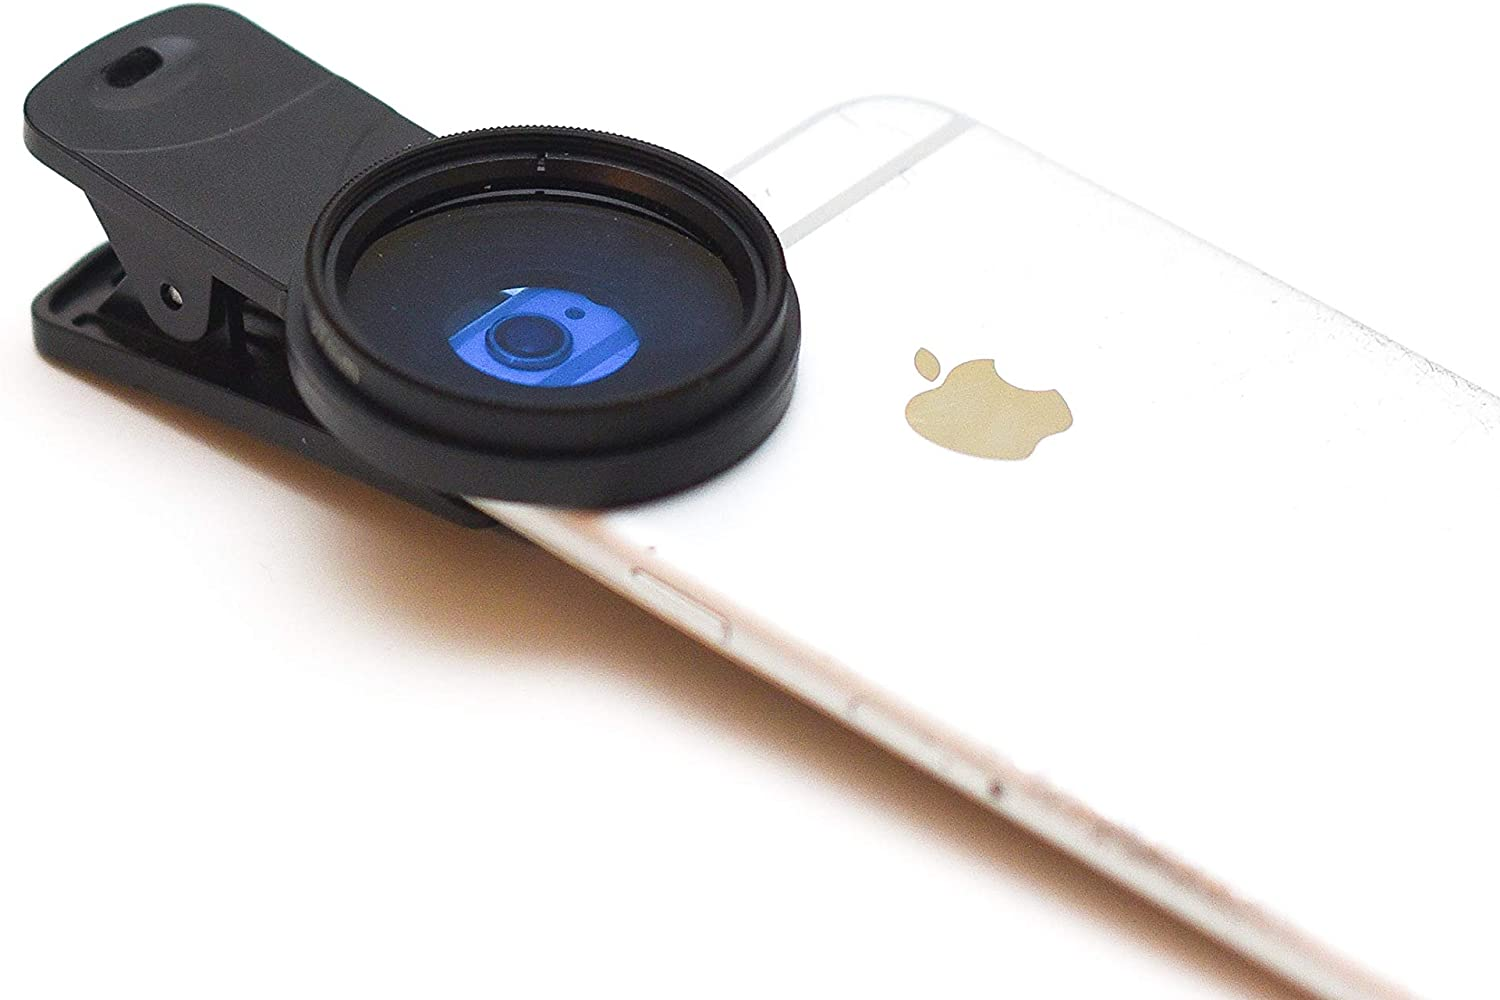 HPS Smartphone Camera Lens Filter - The First Grow Room Photo Filter for Your Phone